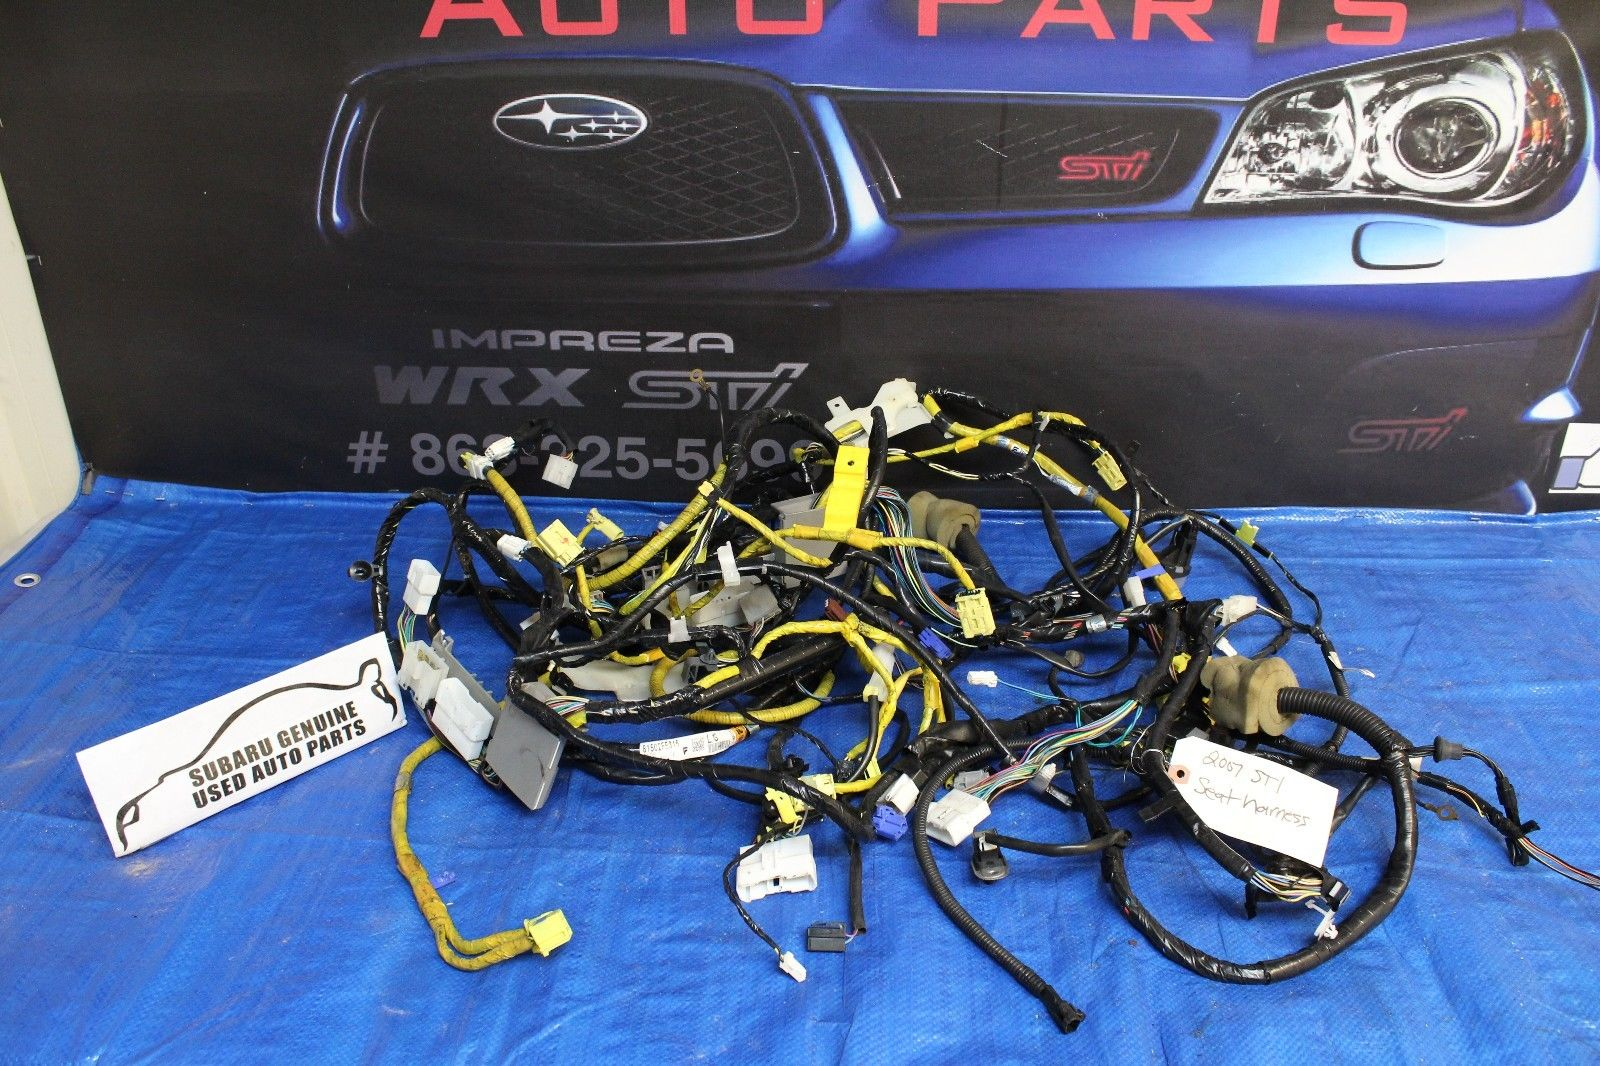 hight resolution of 2004 subaru impreza wrx installation parts harness wires subaru stereo wiring harness 2004 subaru wrx wiring